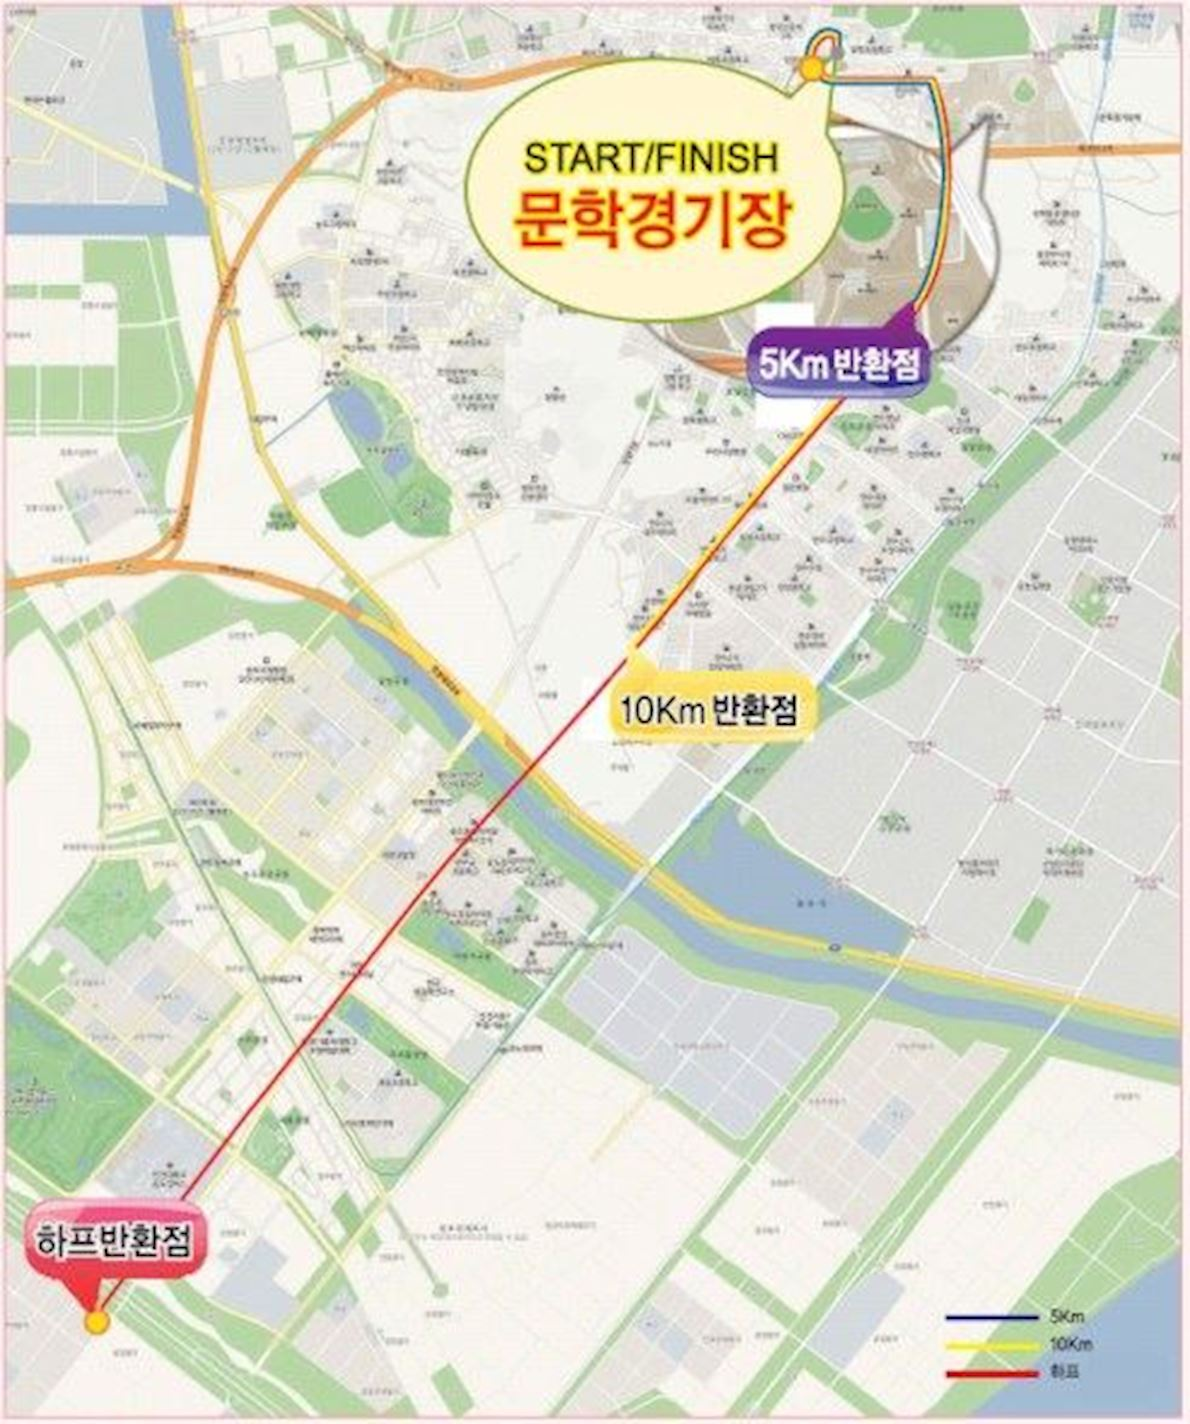 Incheon International Half Marathon MAPA DEL RECORRIDO DE